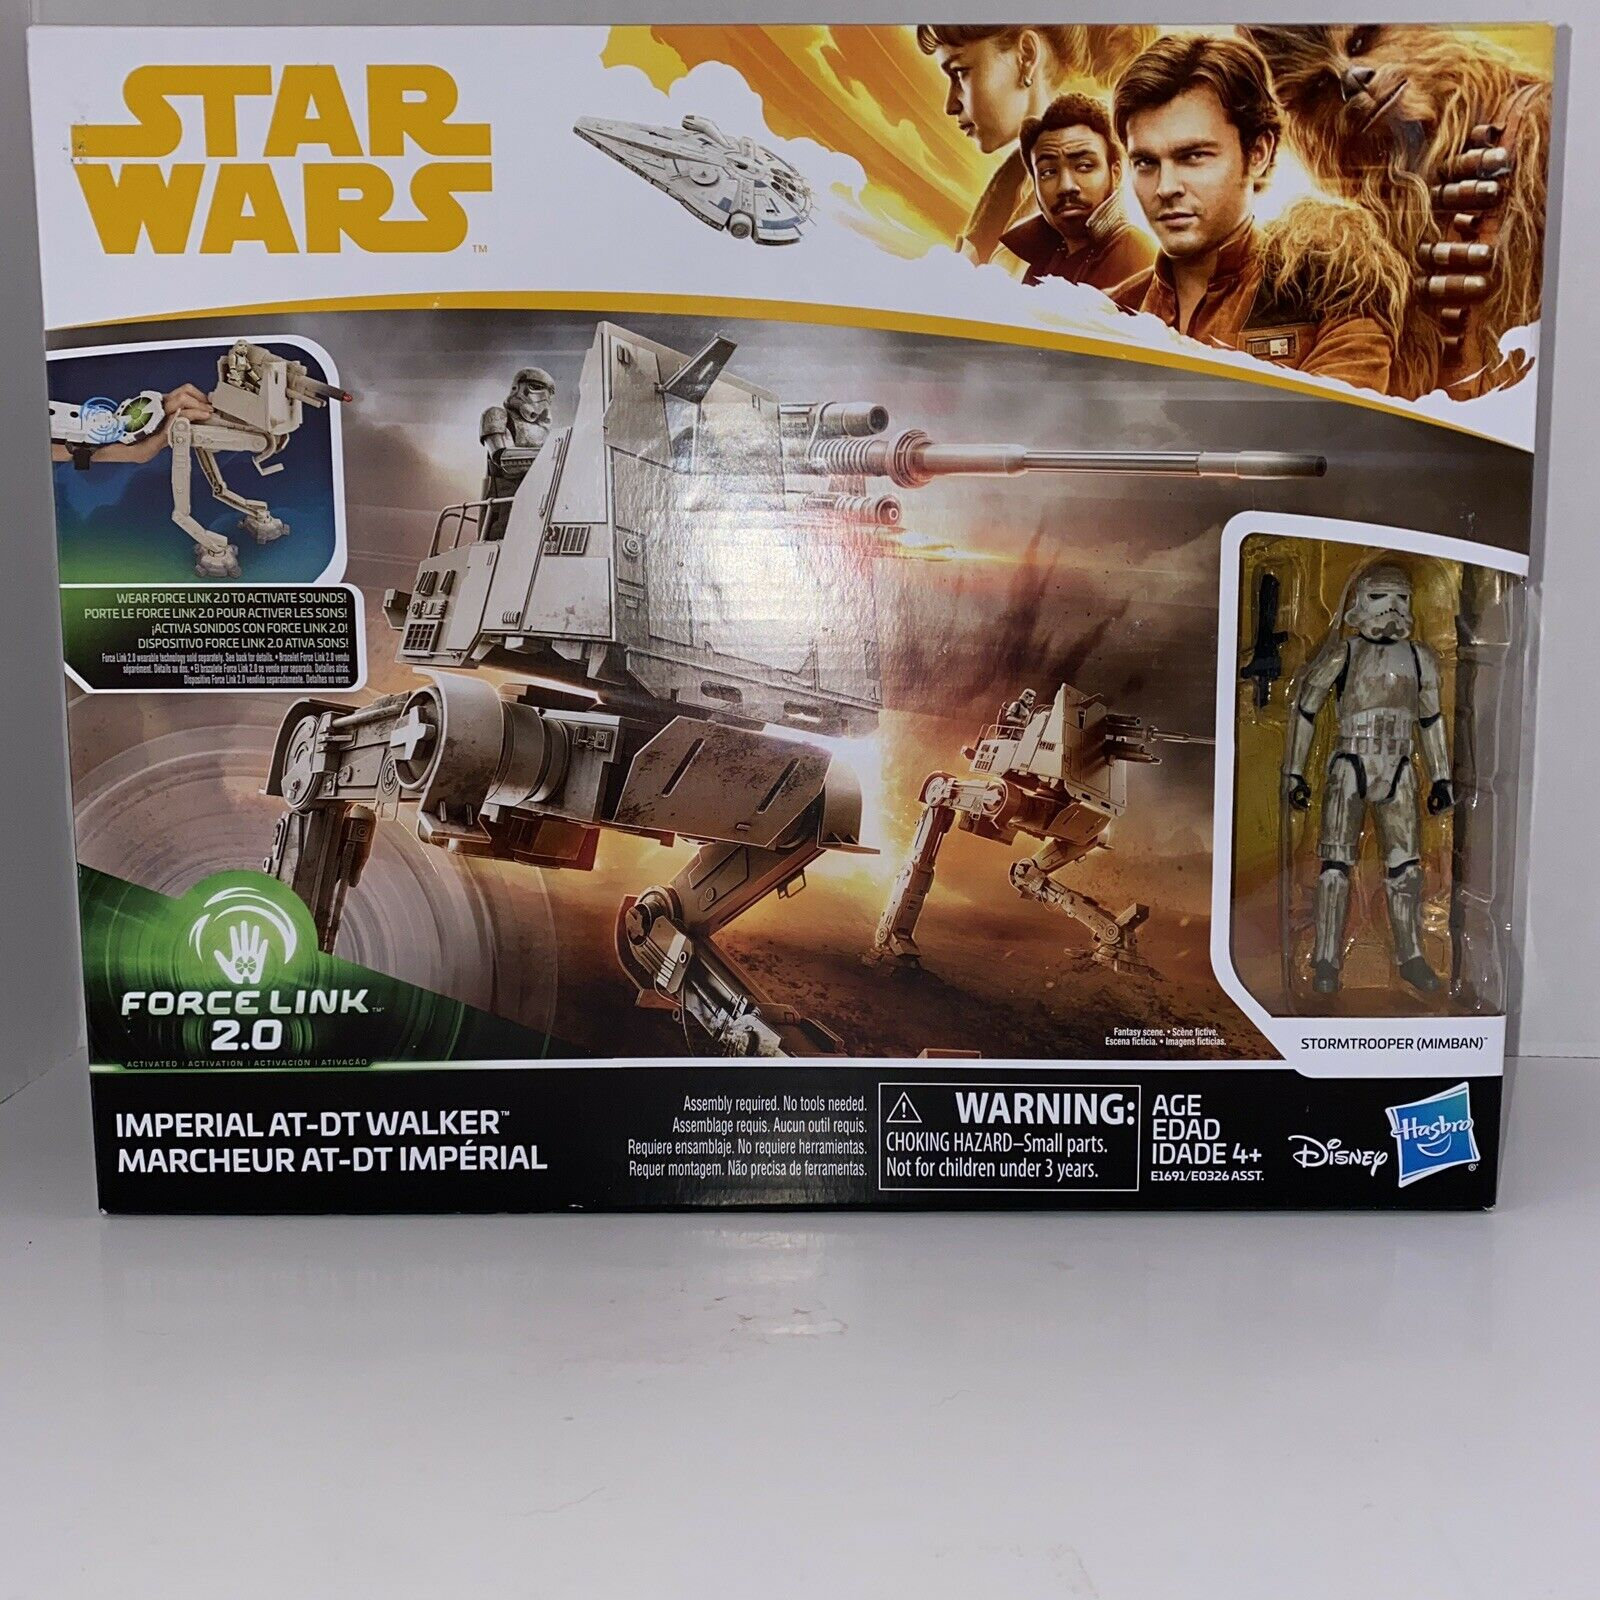 Star Wars Force Link 2.0 Imperial AT-DT Walker with Mimban Stormtrooper